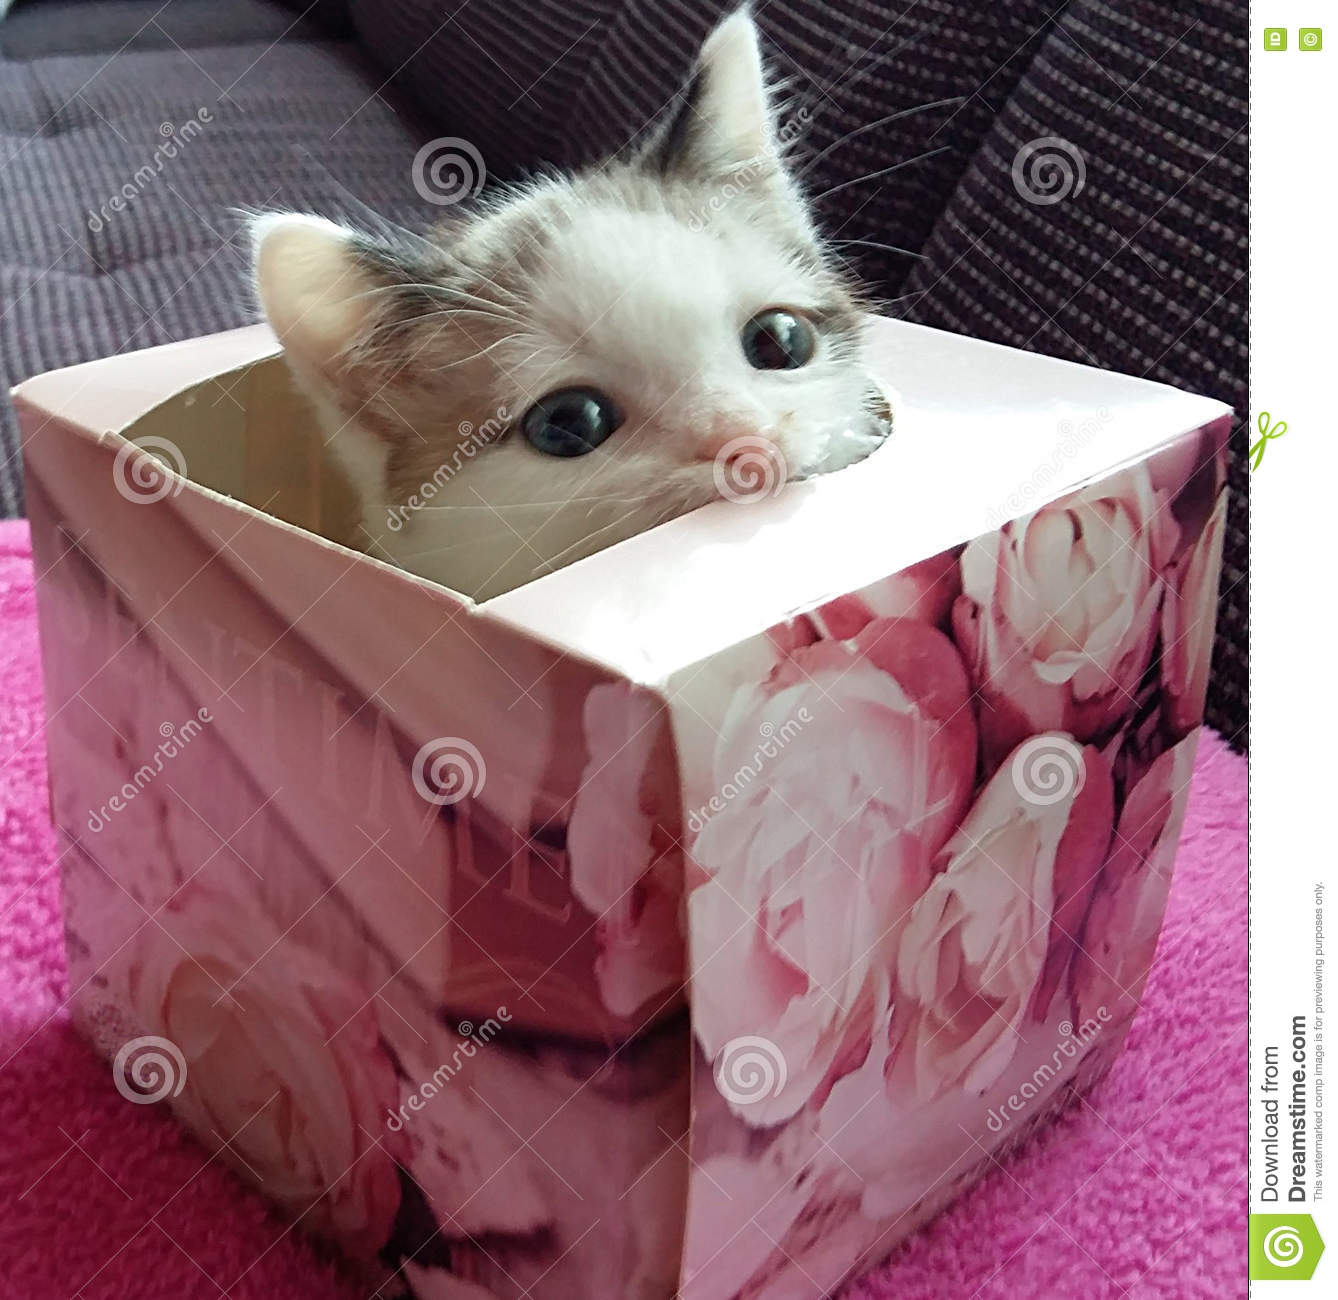 KITTEN IN THE BOX